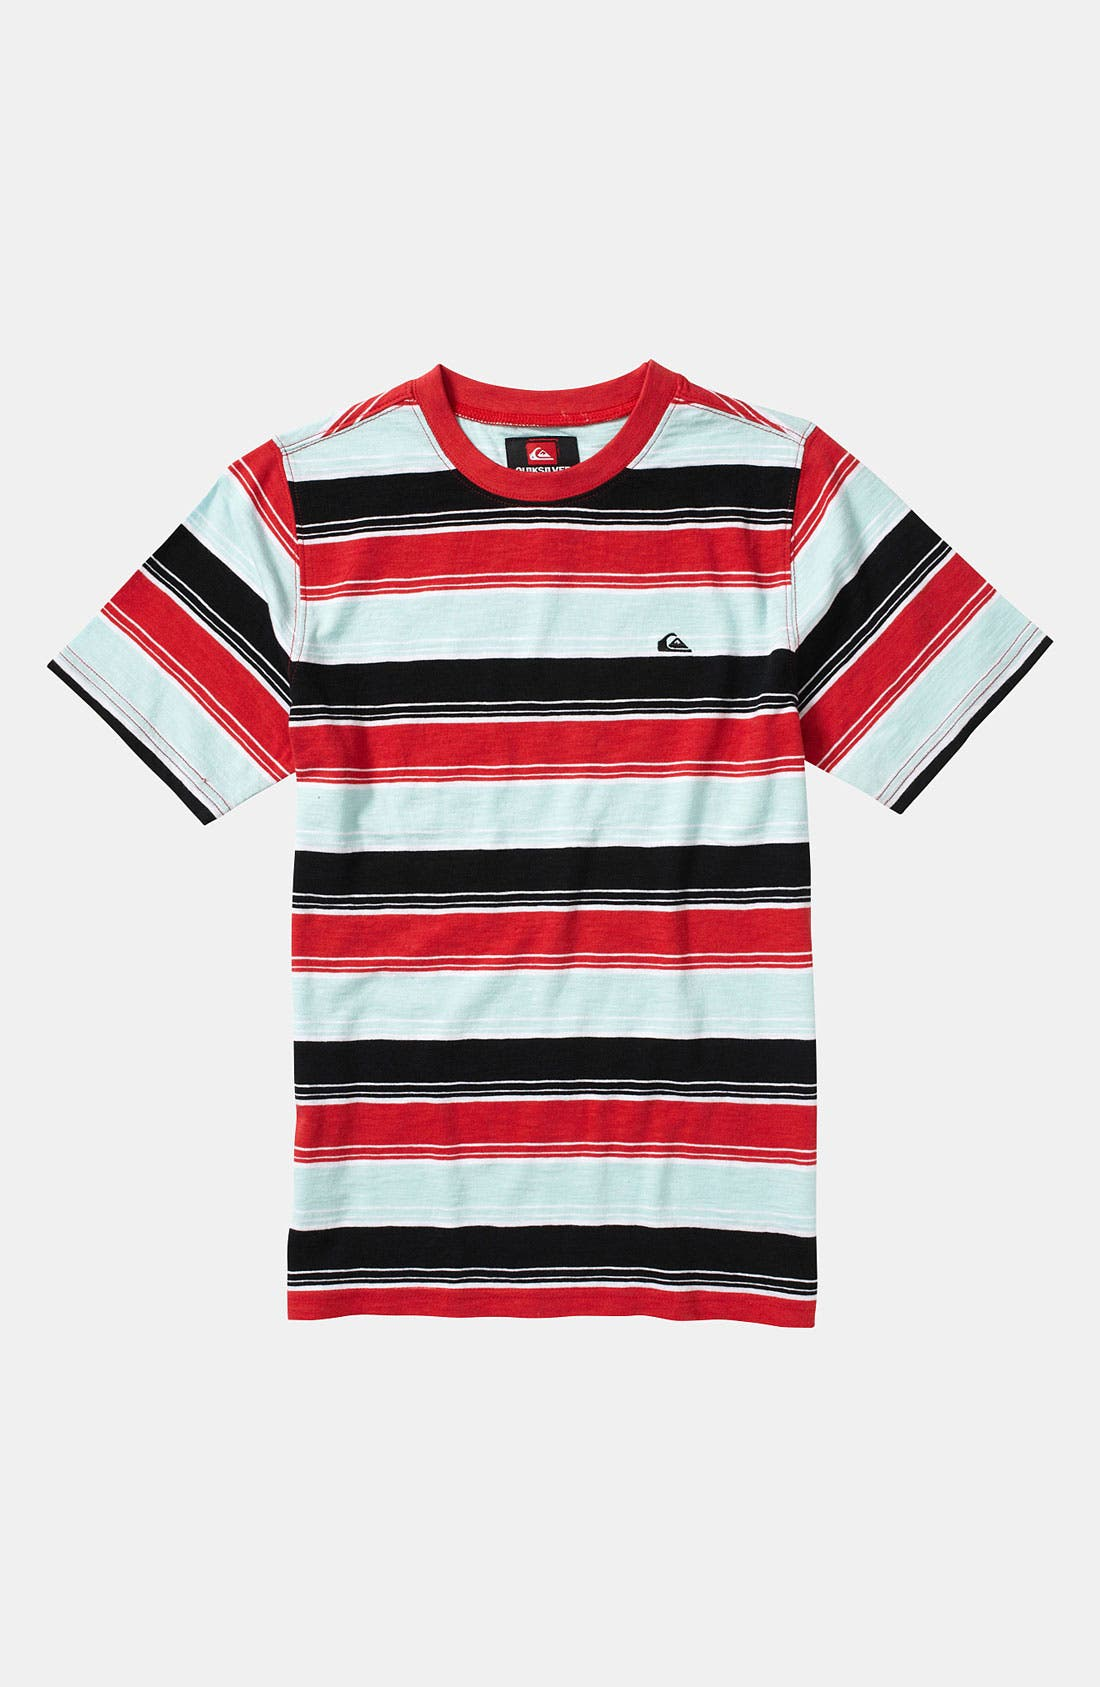 Main Image - Quiksilver 'Downside' T-Shirt (Little Boys)